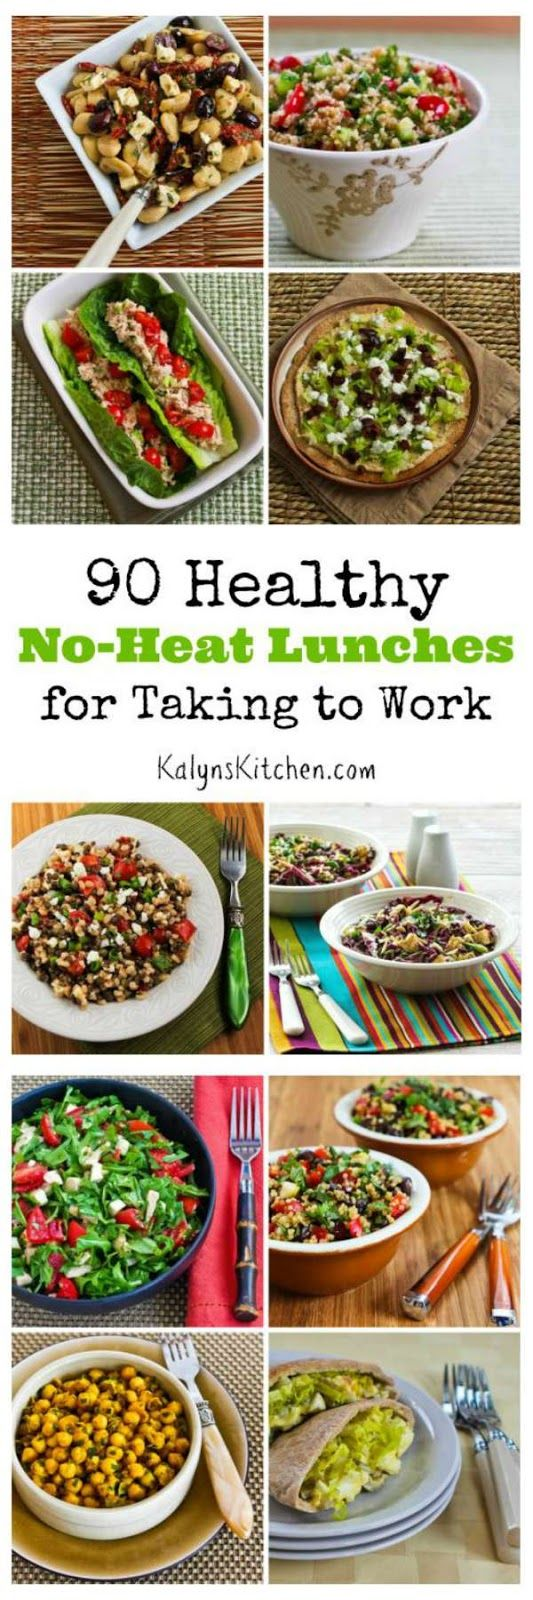 90 Healthy No-Heat Lunches for Taking to Work (Many are Low-Carb and Gluten-Free) | Kalyn's Kitchen®